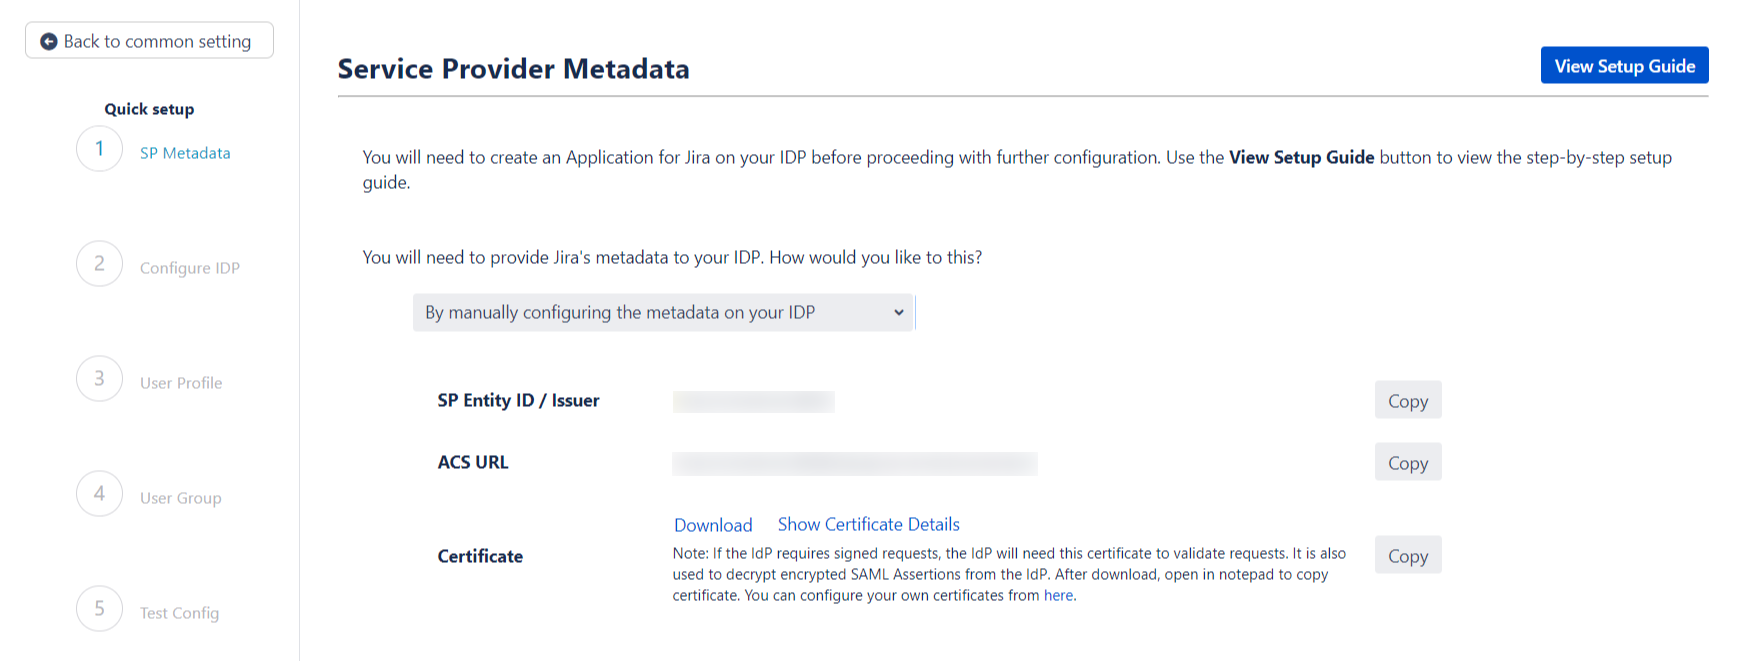 SAML Single Sign On (SSO) into Jira, Quick Setup sp metadata manual